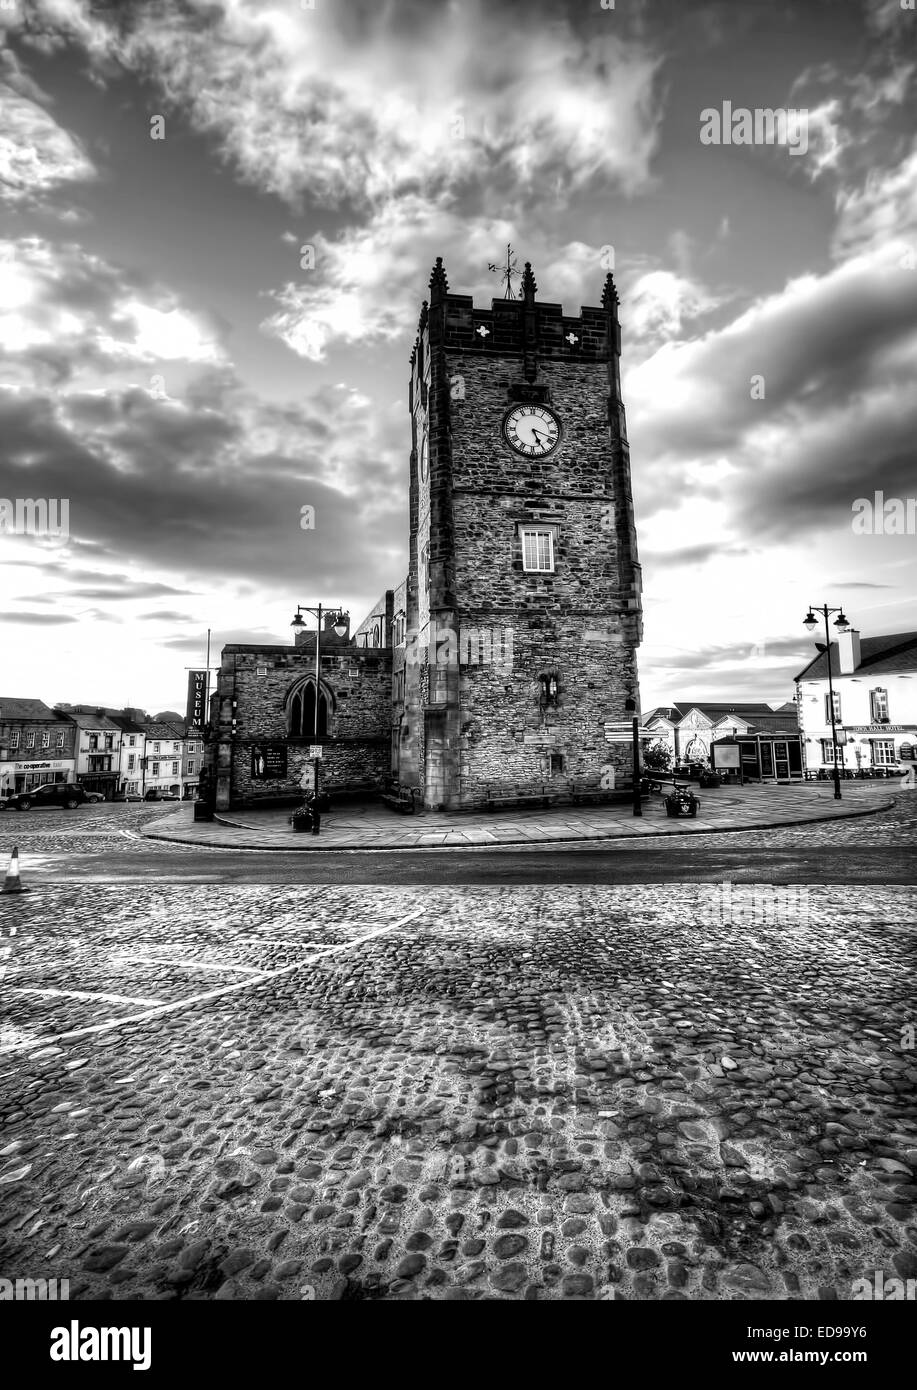 The Market Place in Richmond, North Yorkshire taken at 5am on a Sunday morning. - Stock Image